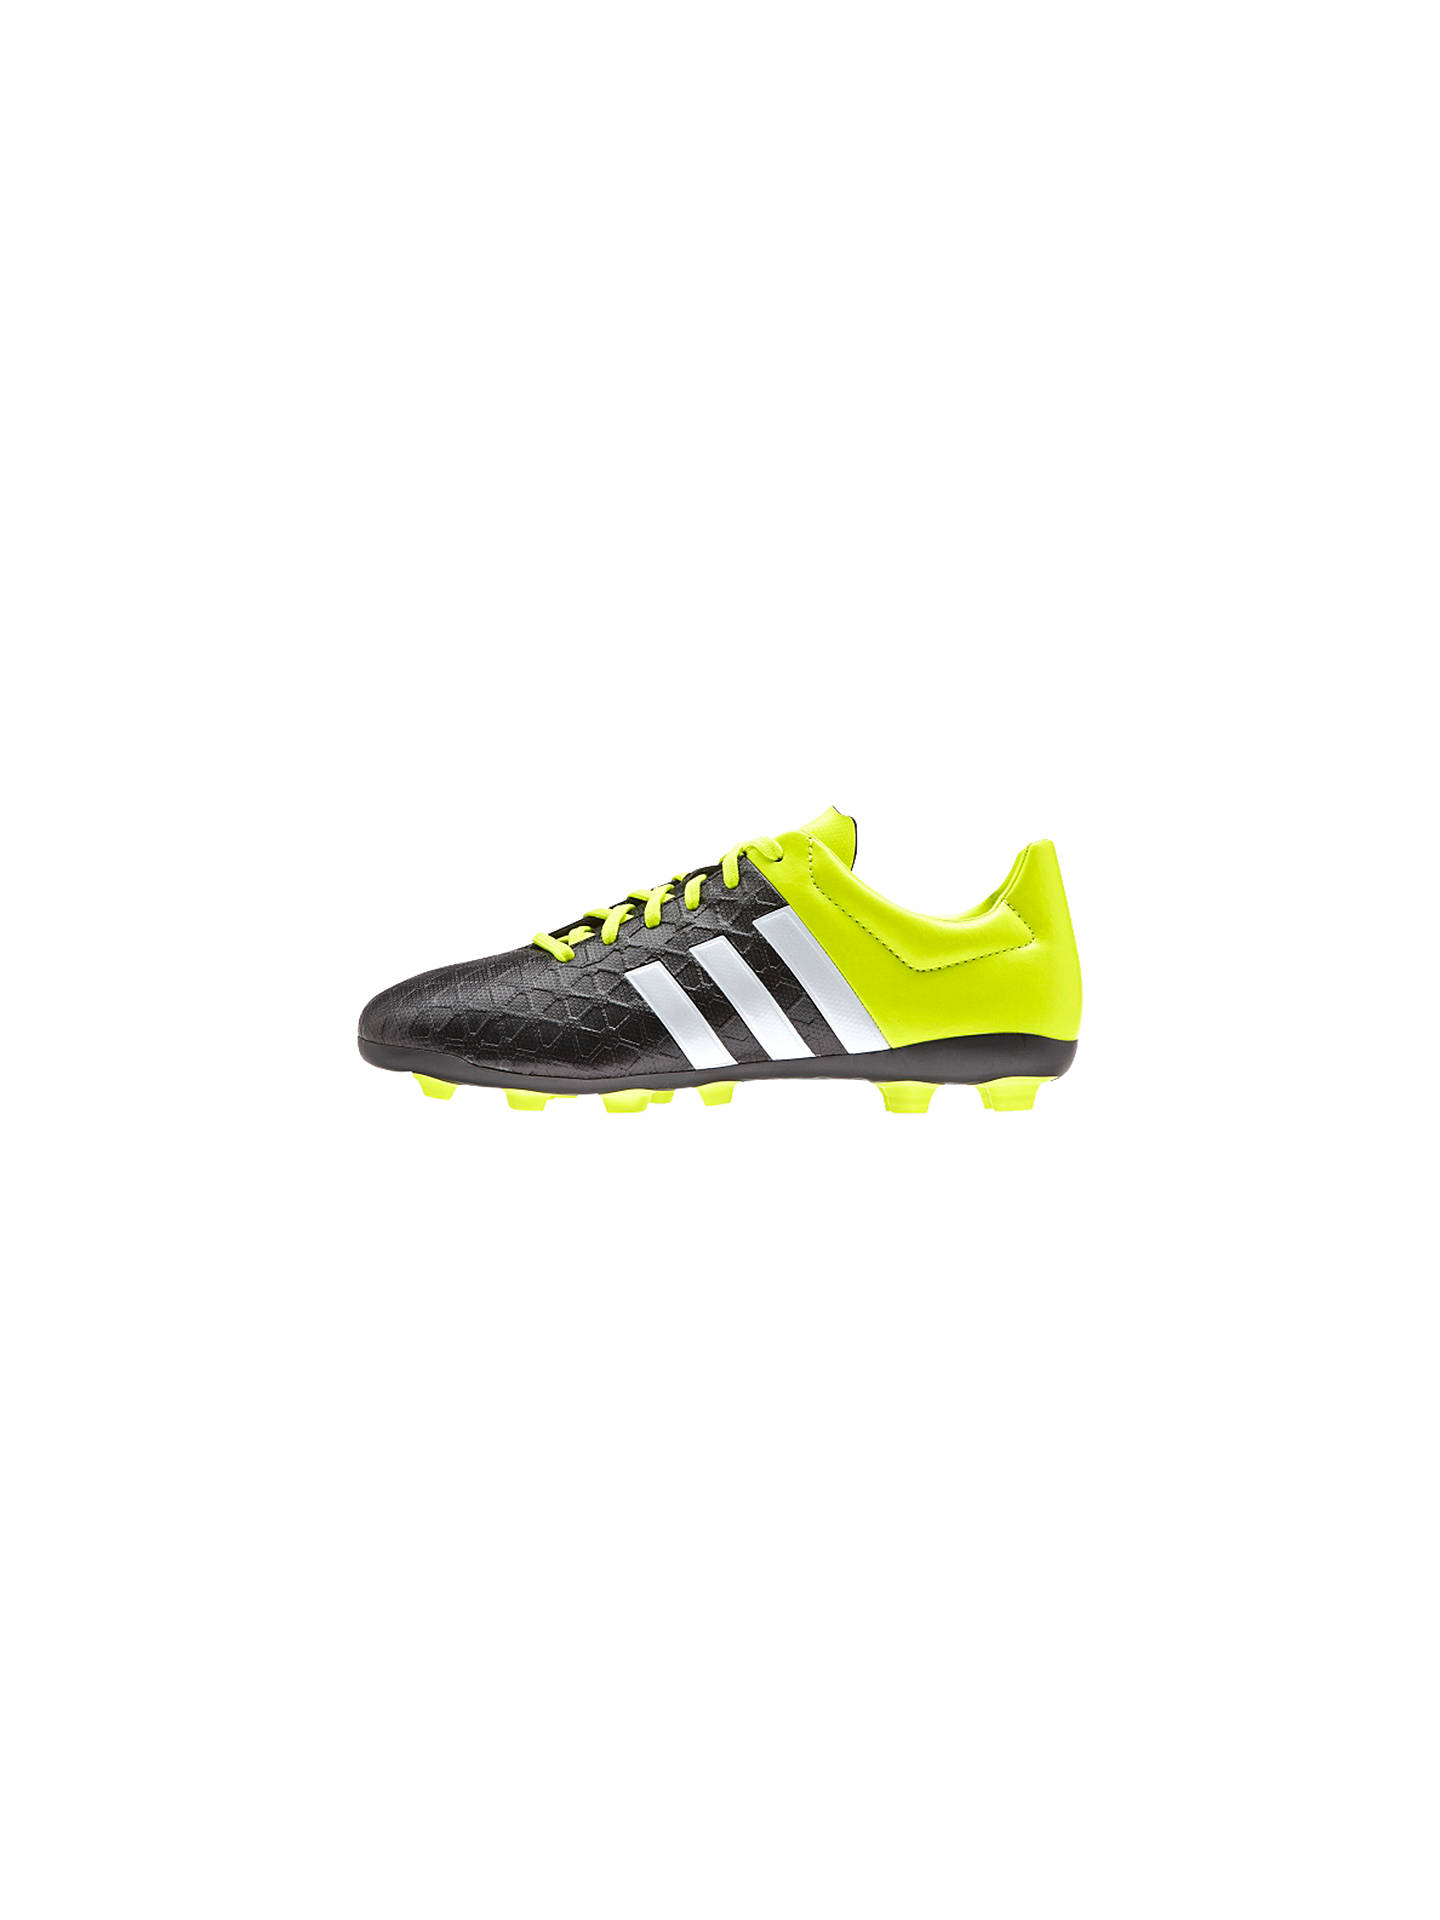 2019 Fashion Sport Shoes Adidas Performance Ace 15.4 Fxg